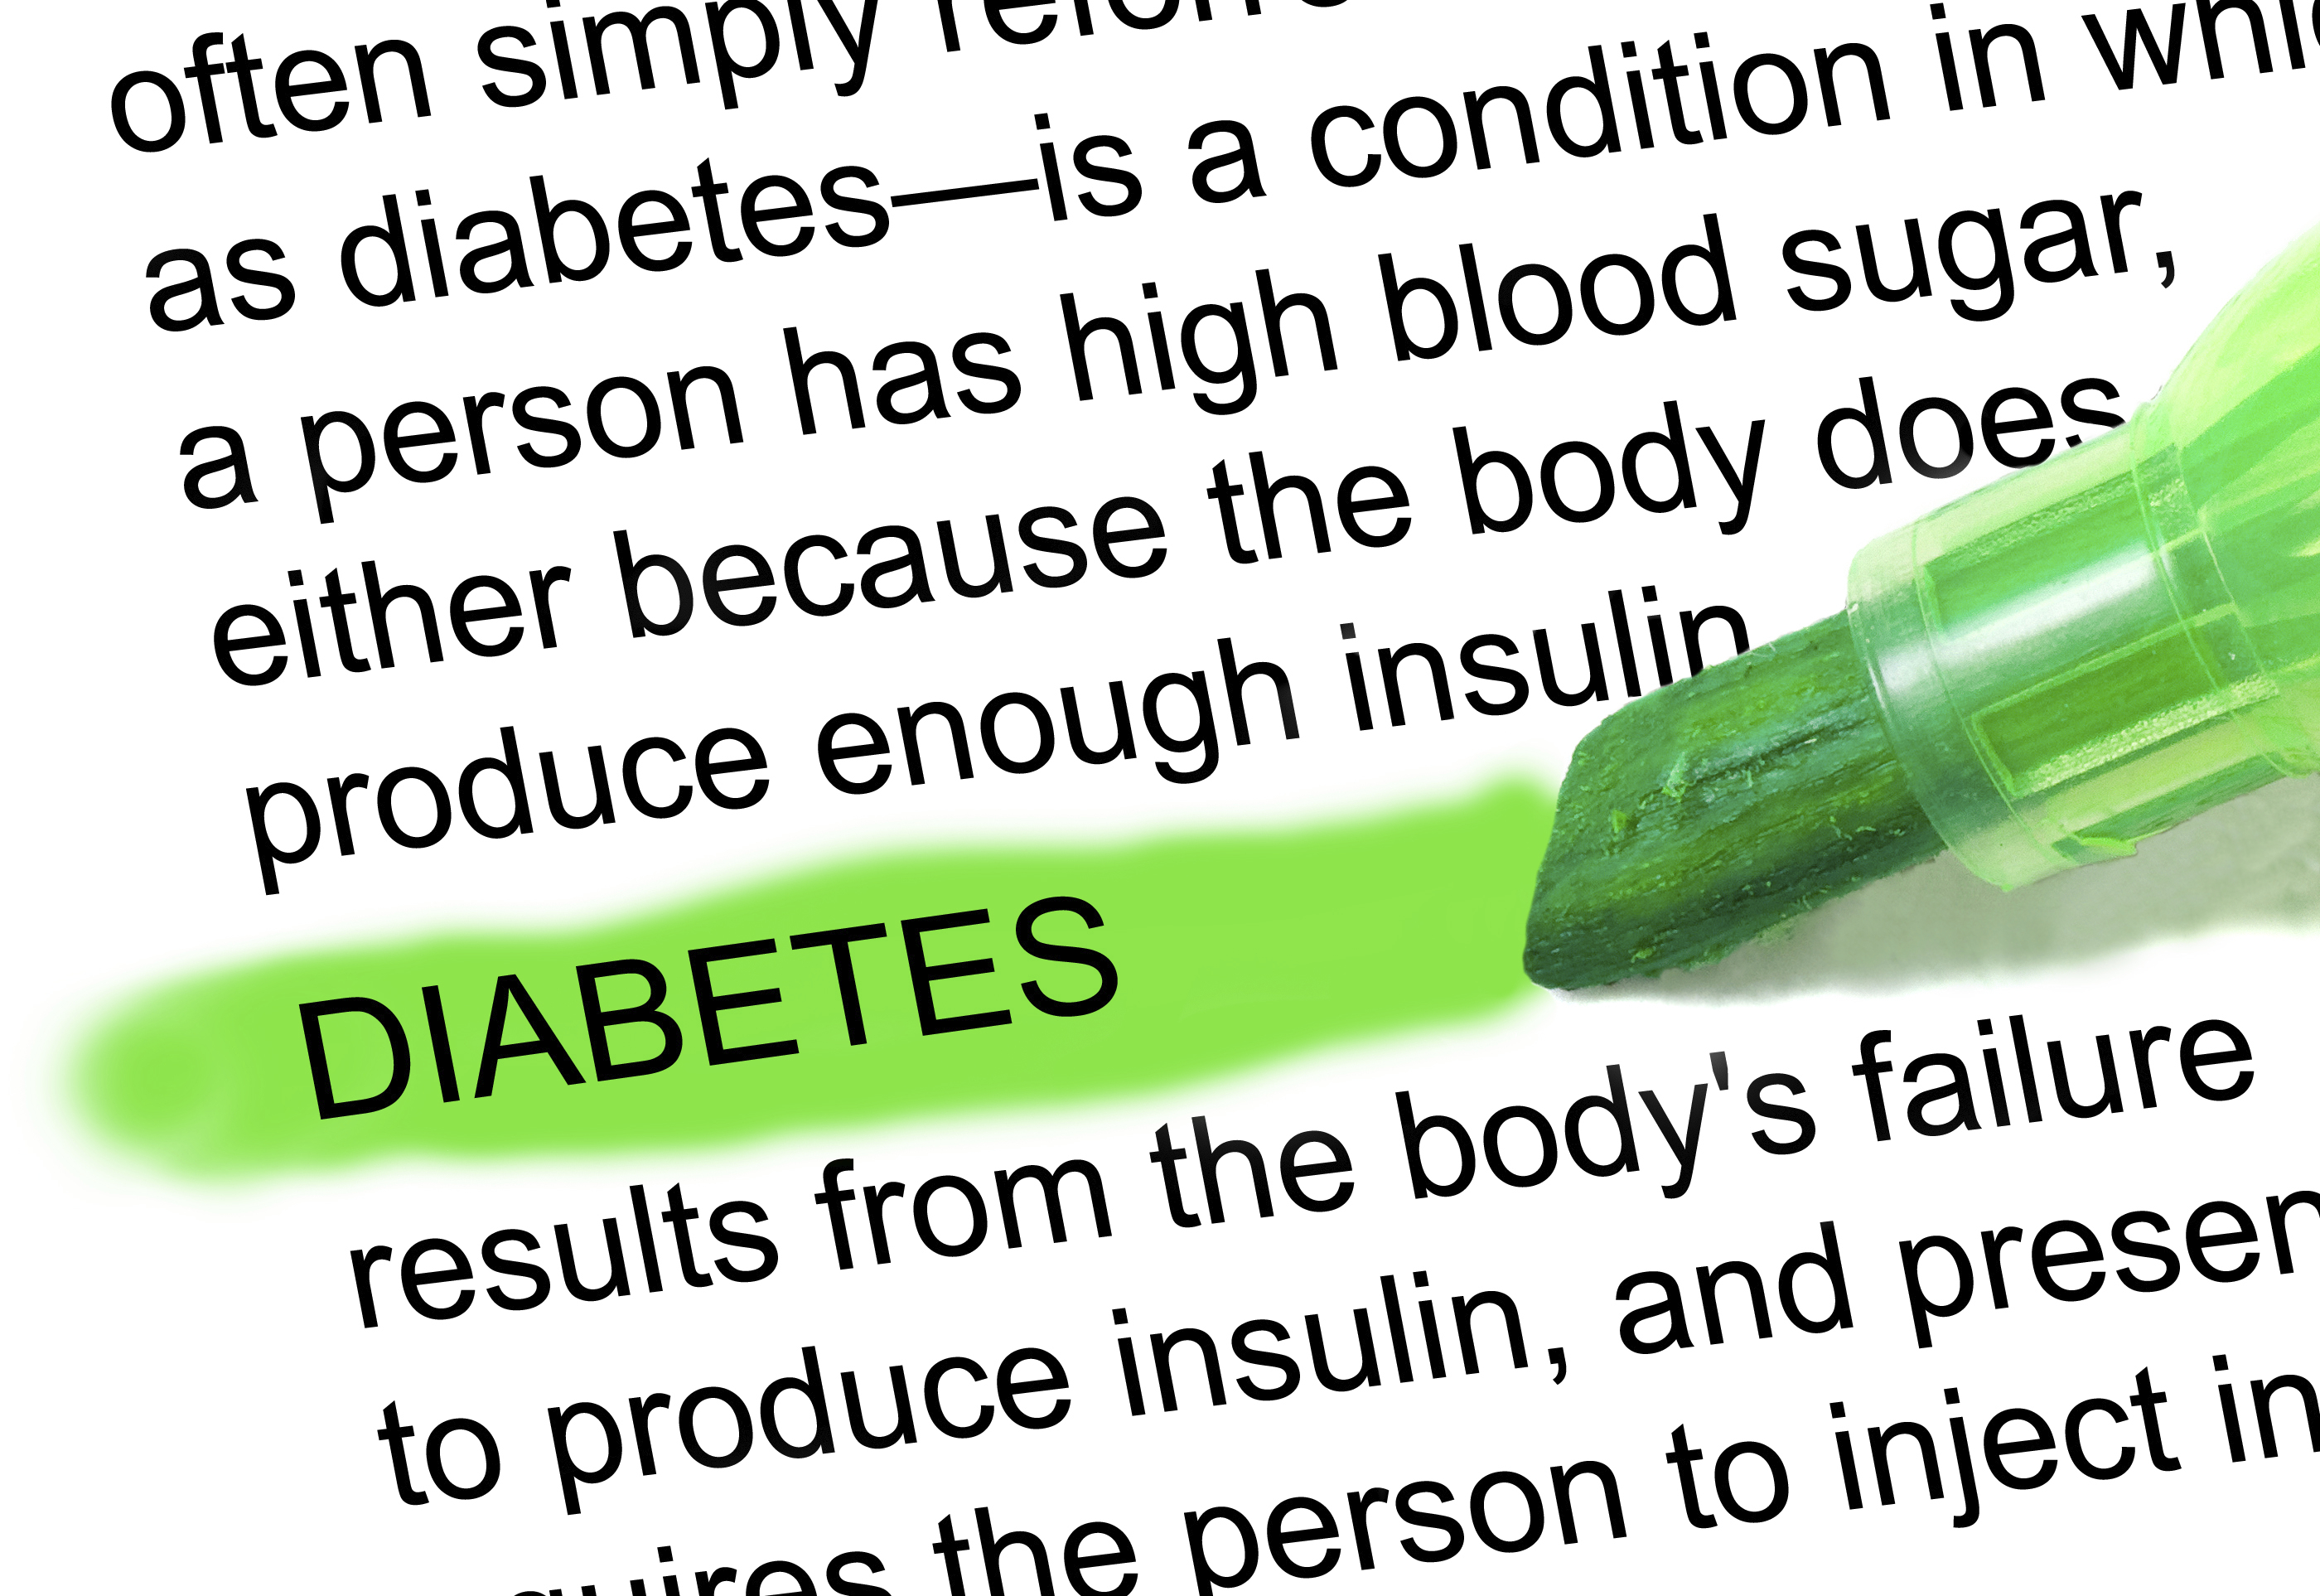 Diabetes Prevention and Management